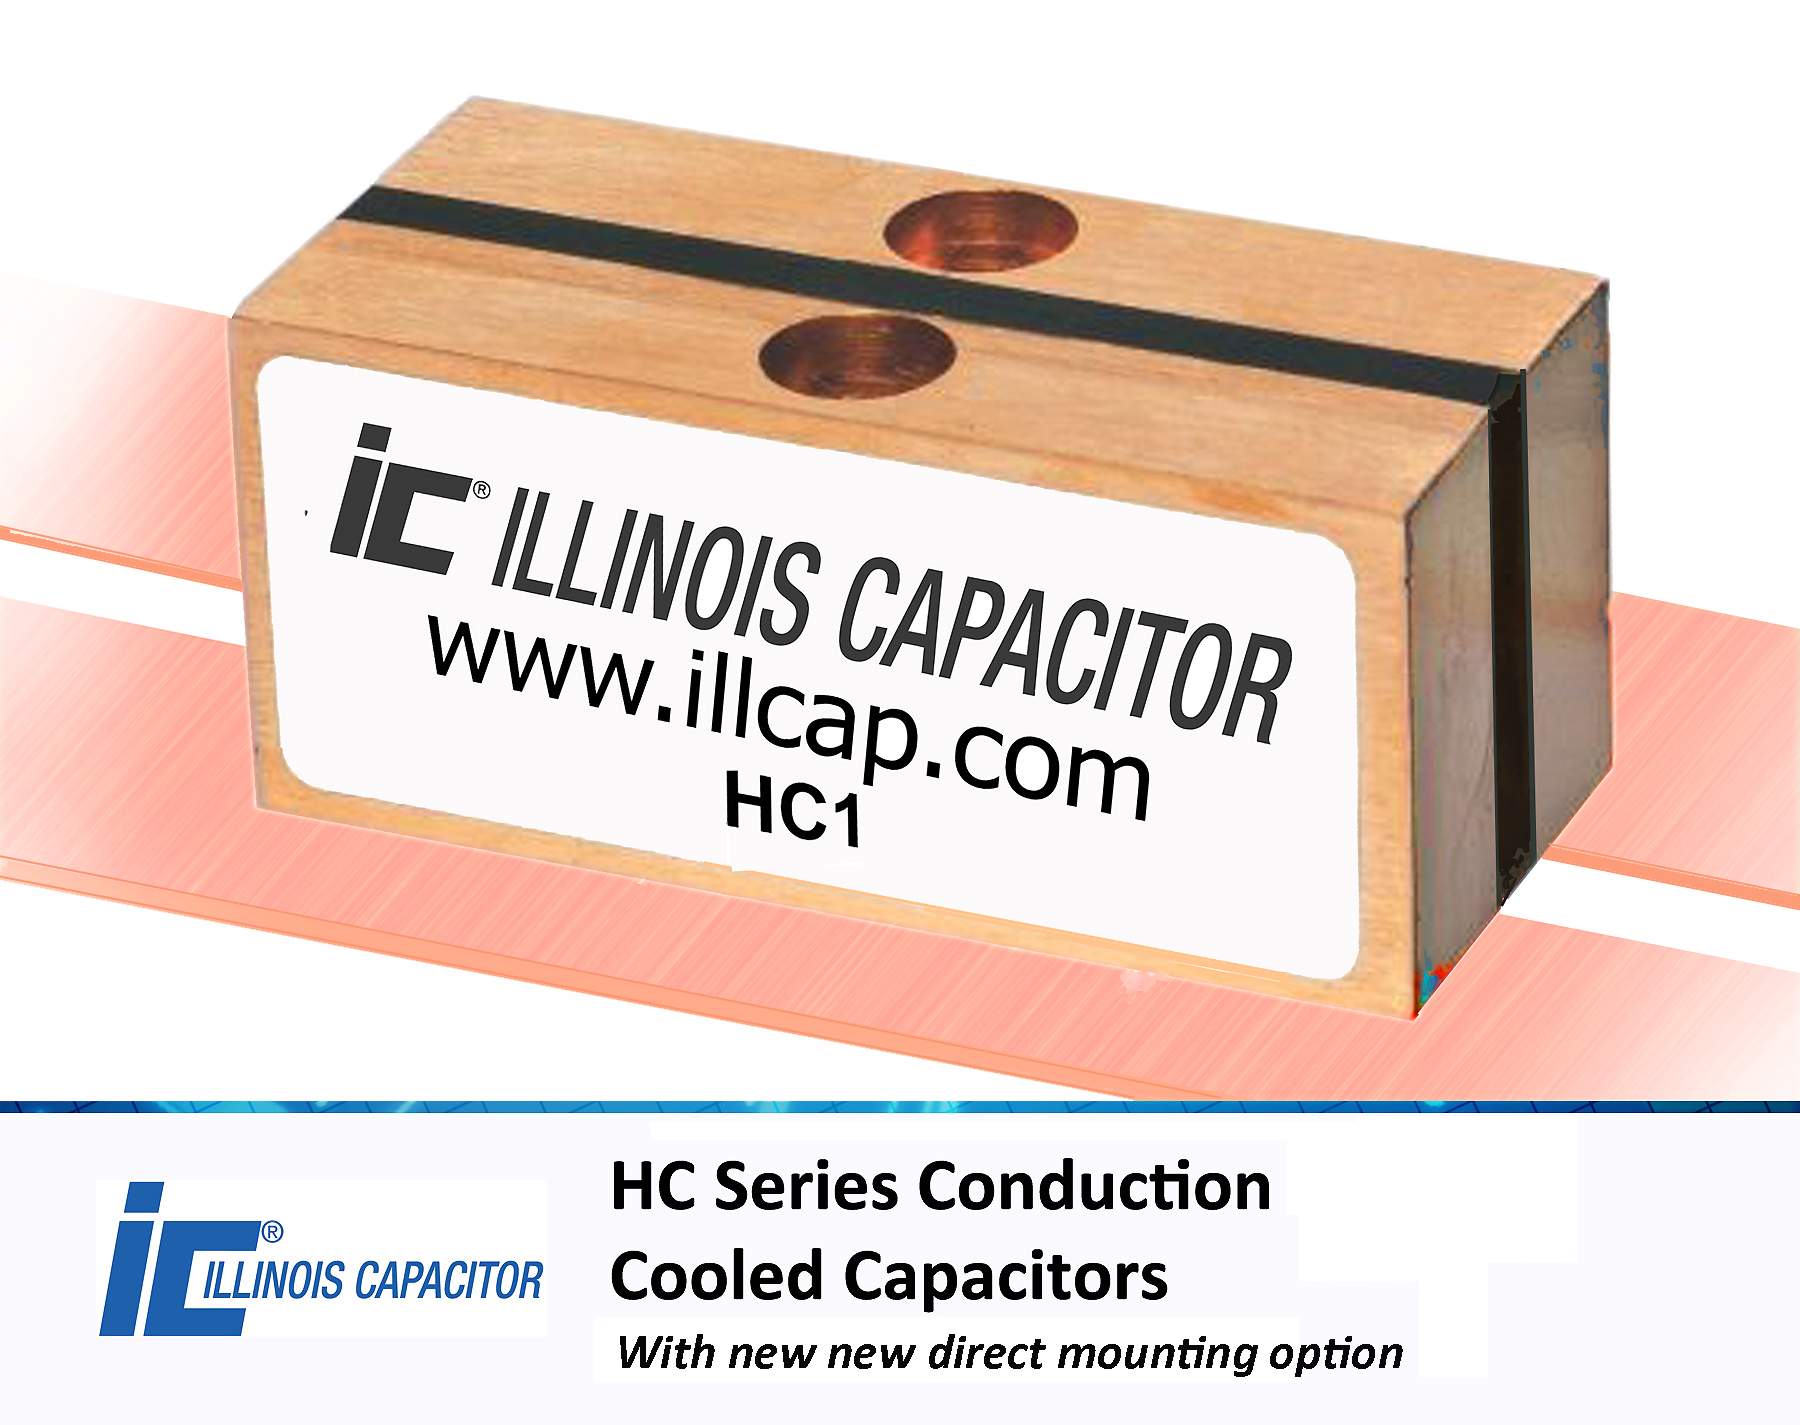 Conduction-Cooled Capacitors Include Direct Mounting Options